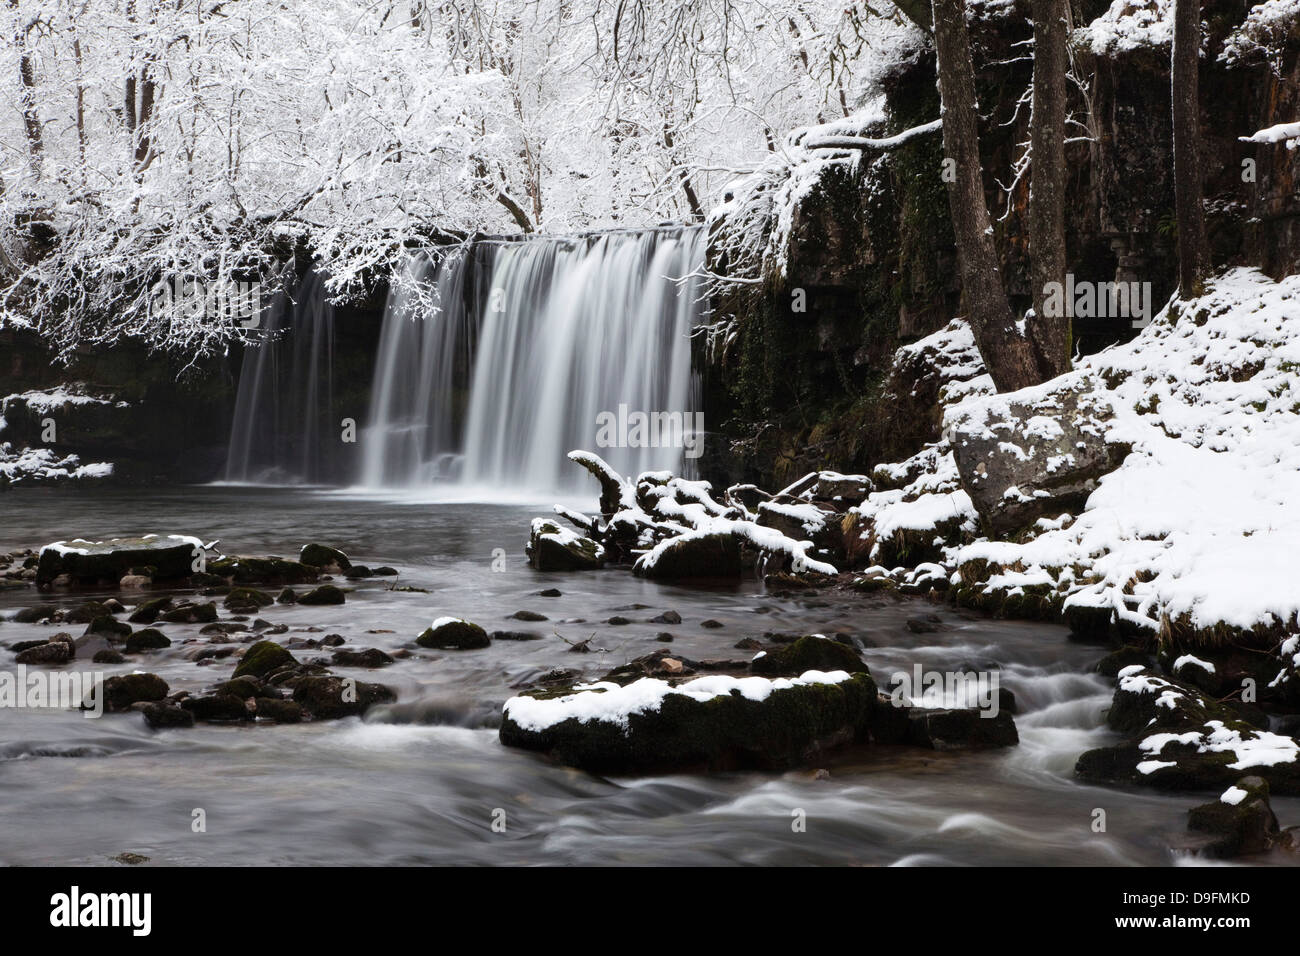 Sqwd dSnow, Sgwd Ddwli Waterfall, Brecon Beacons, Wales, UK - Stock Image